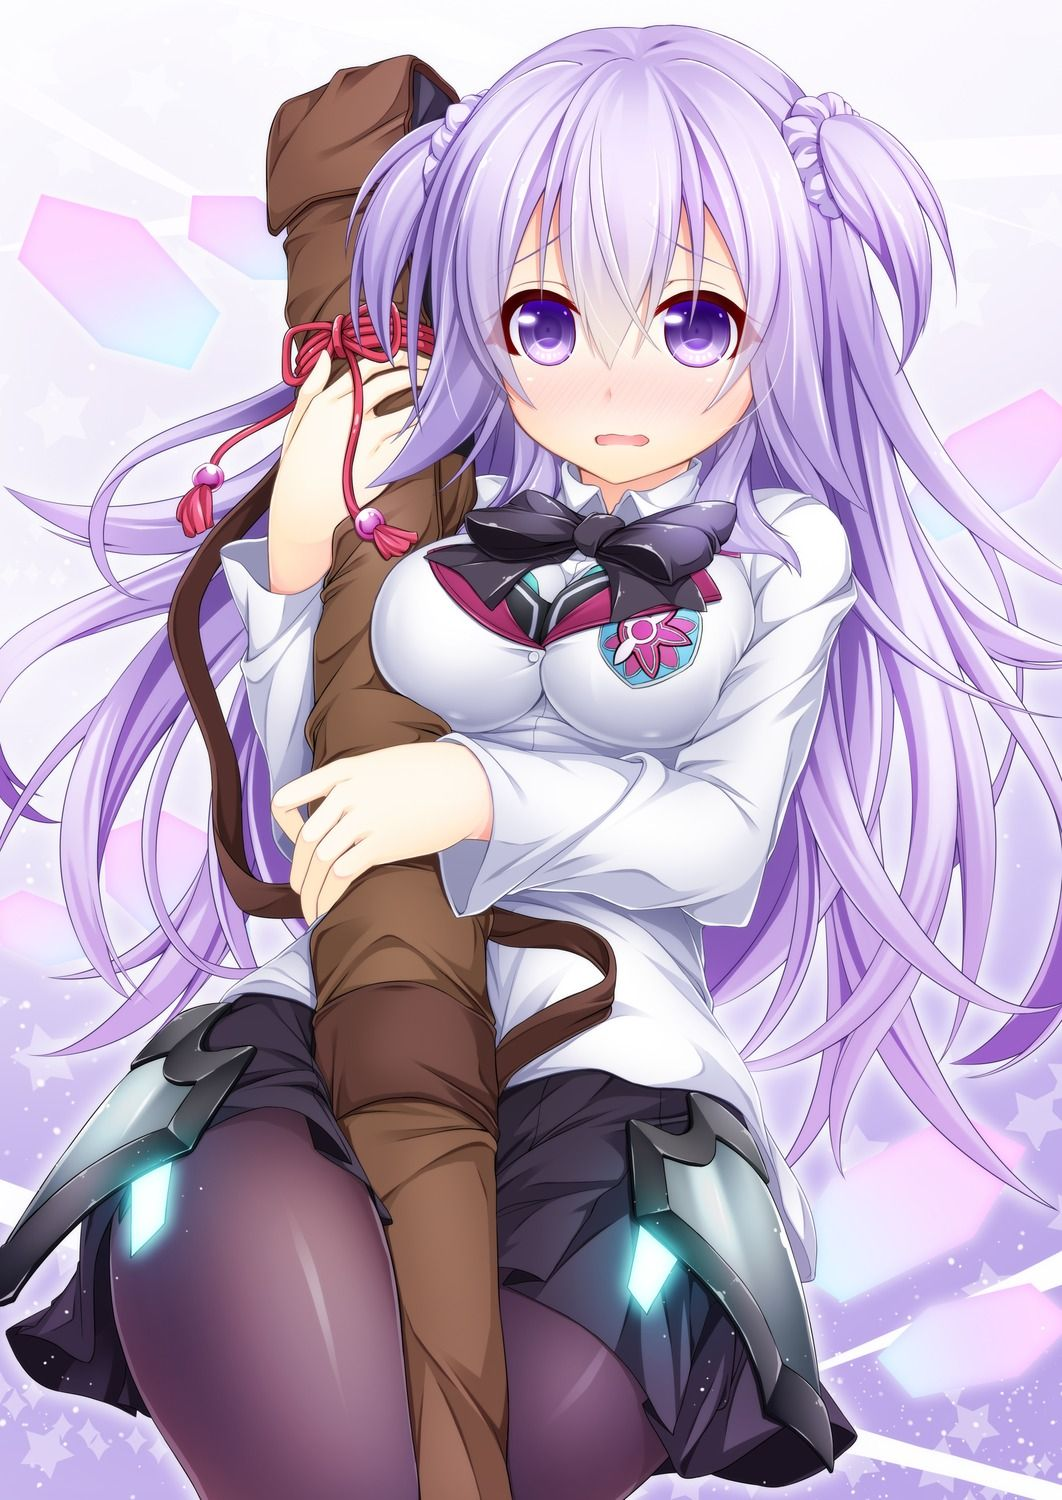 The Cute Kirin From Gakusen Toshi Asterisk Anime Episode 7 Is Here  -3517